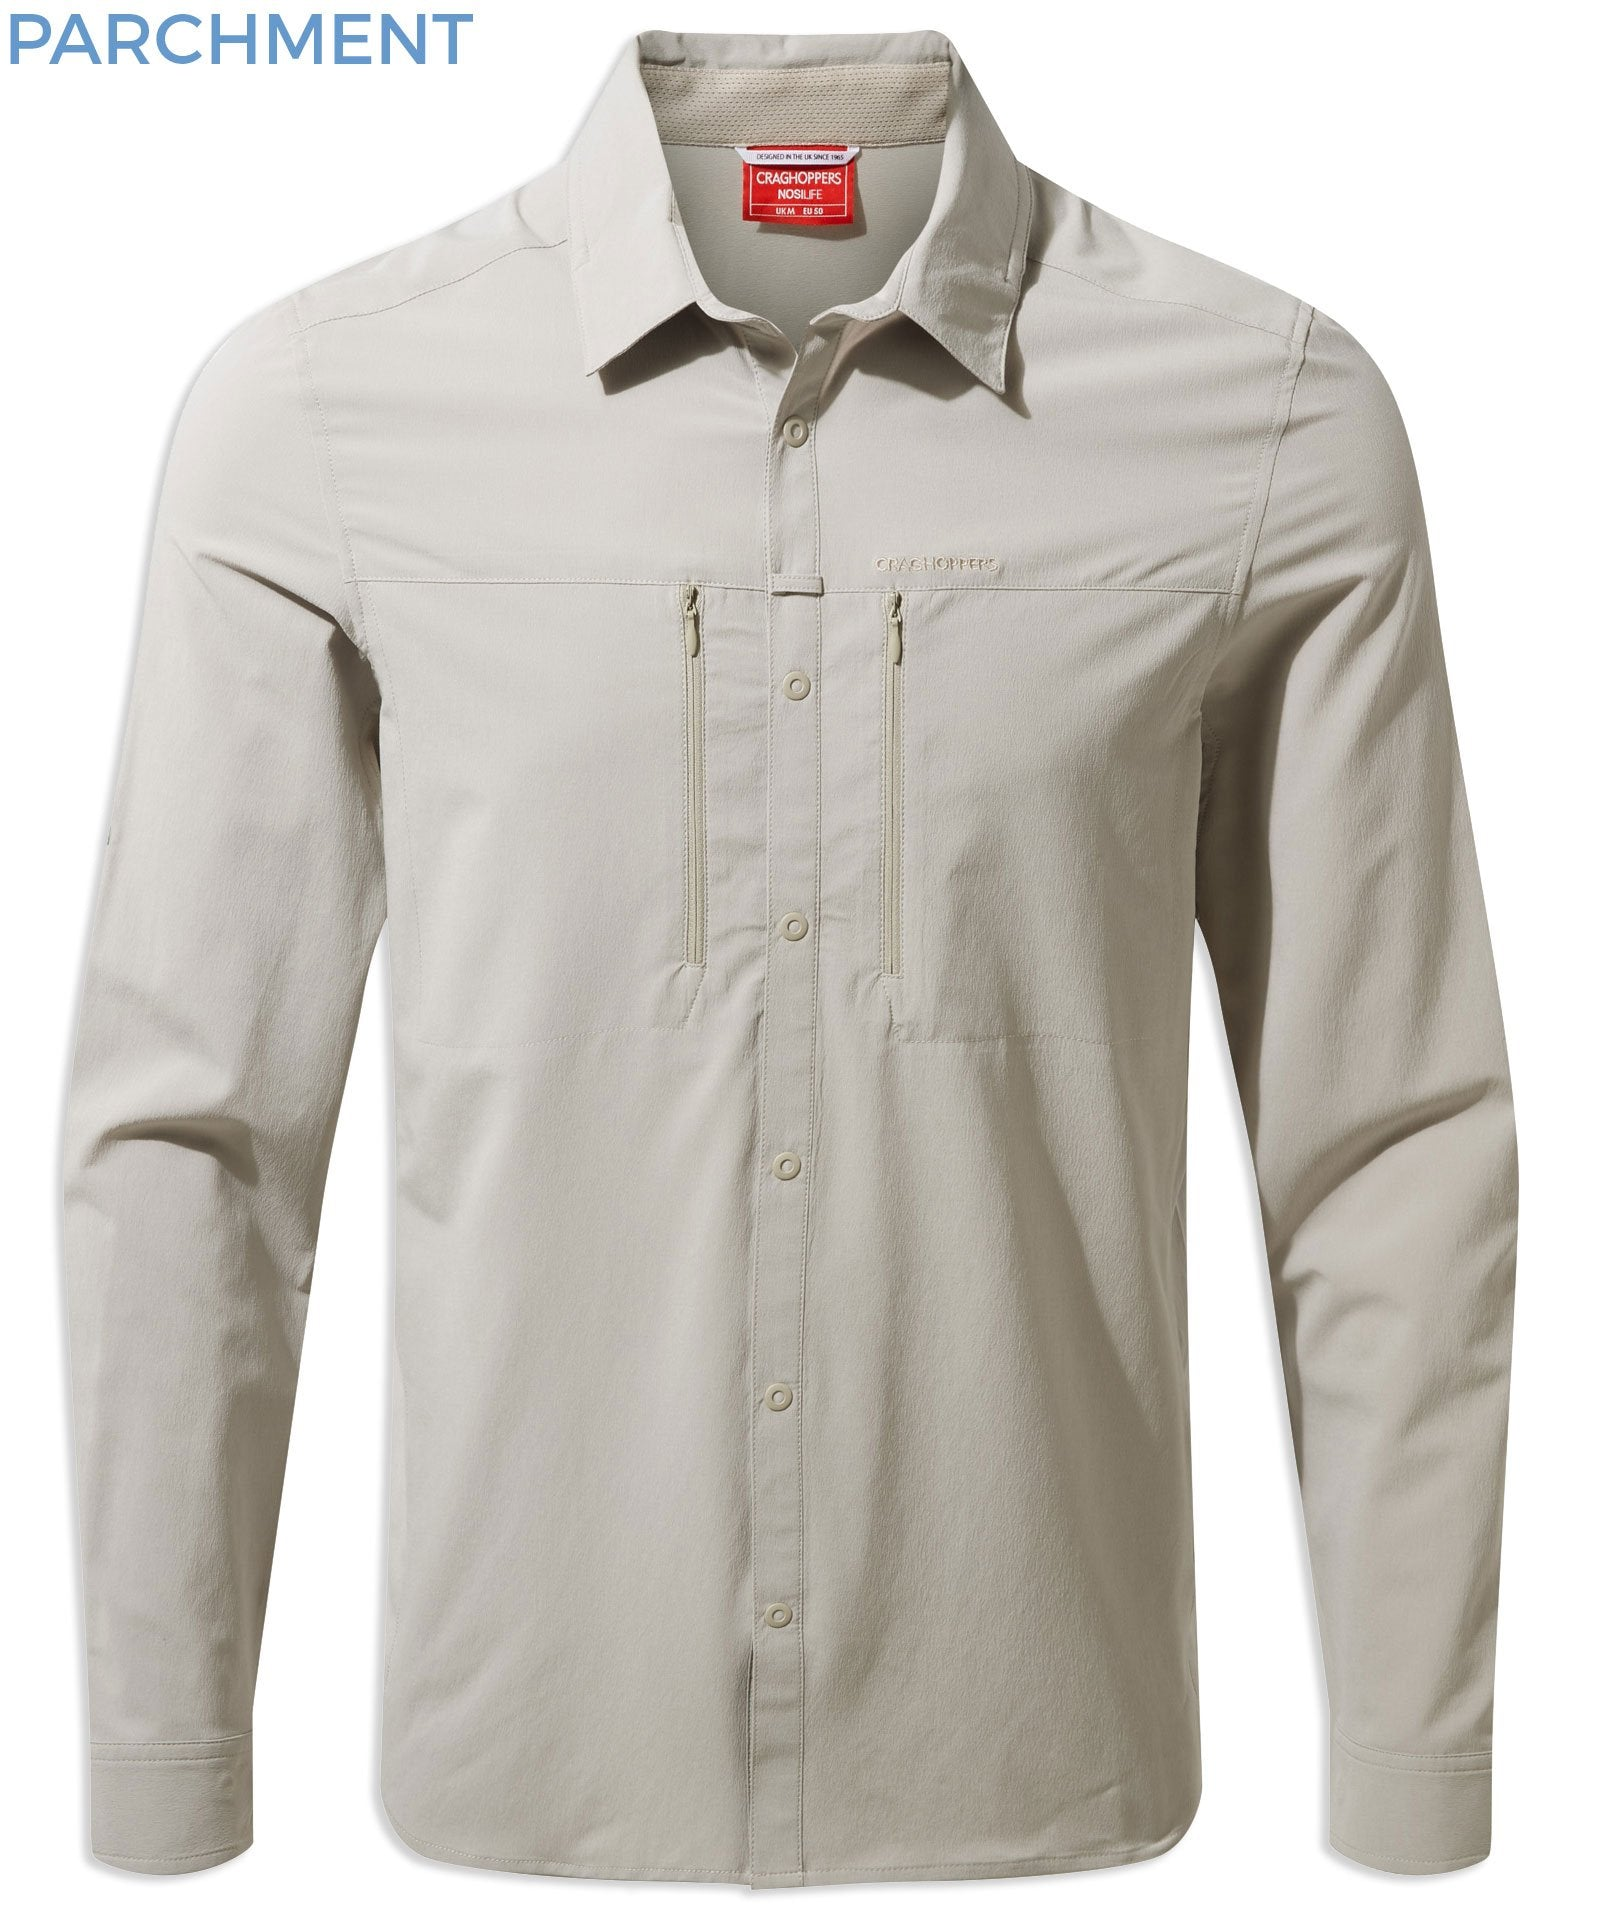 Parchment Craghoppers NosiLife PRO Long Sleeve Shirt